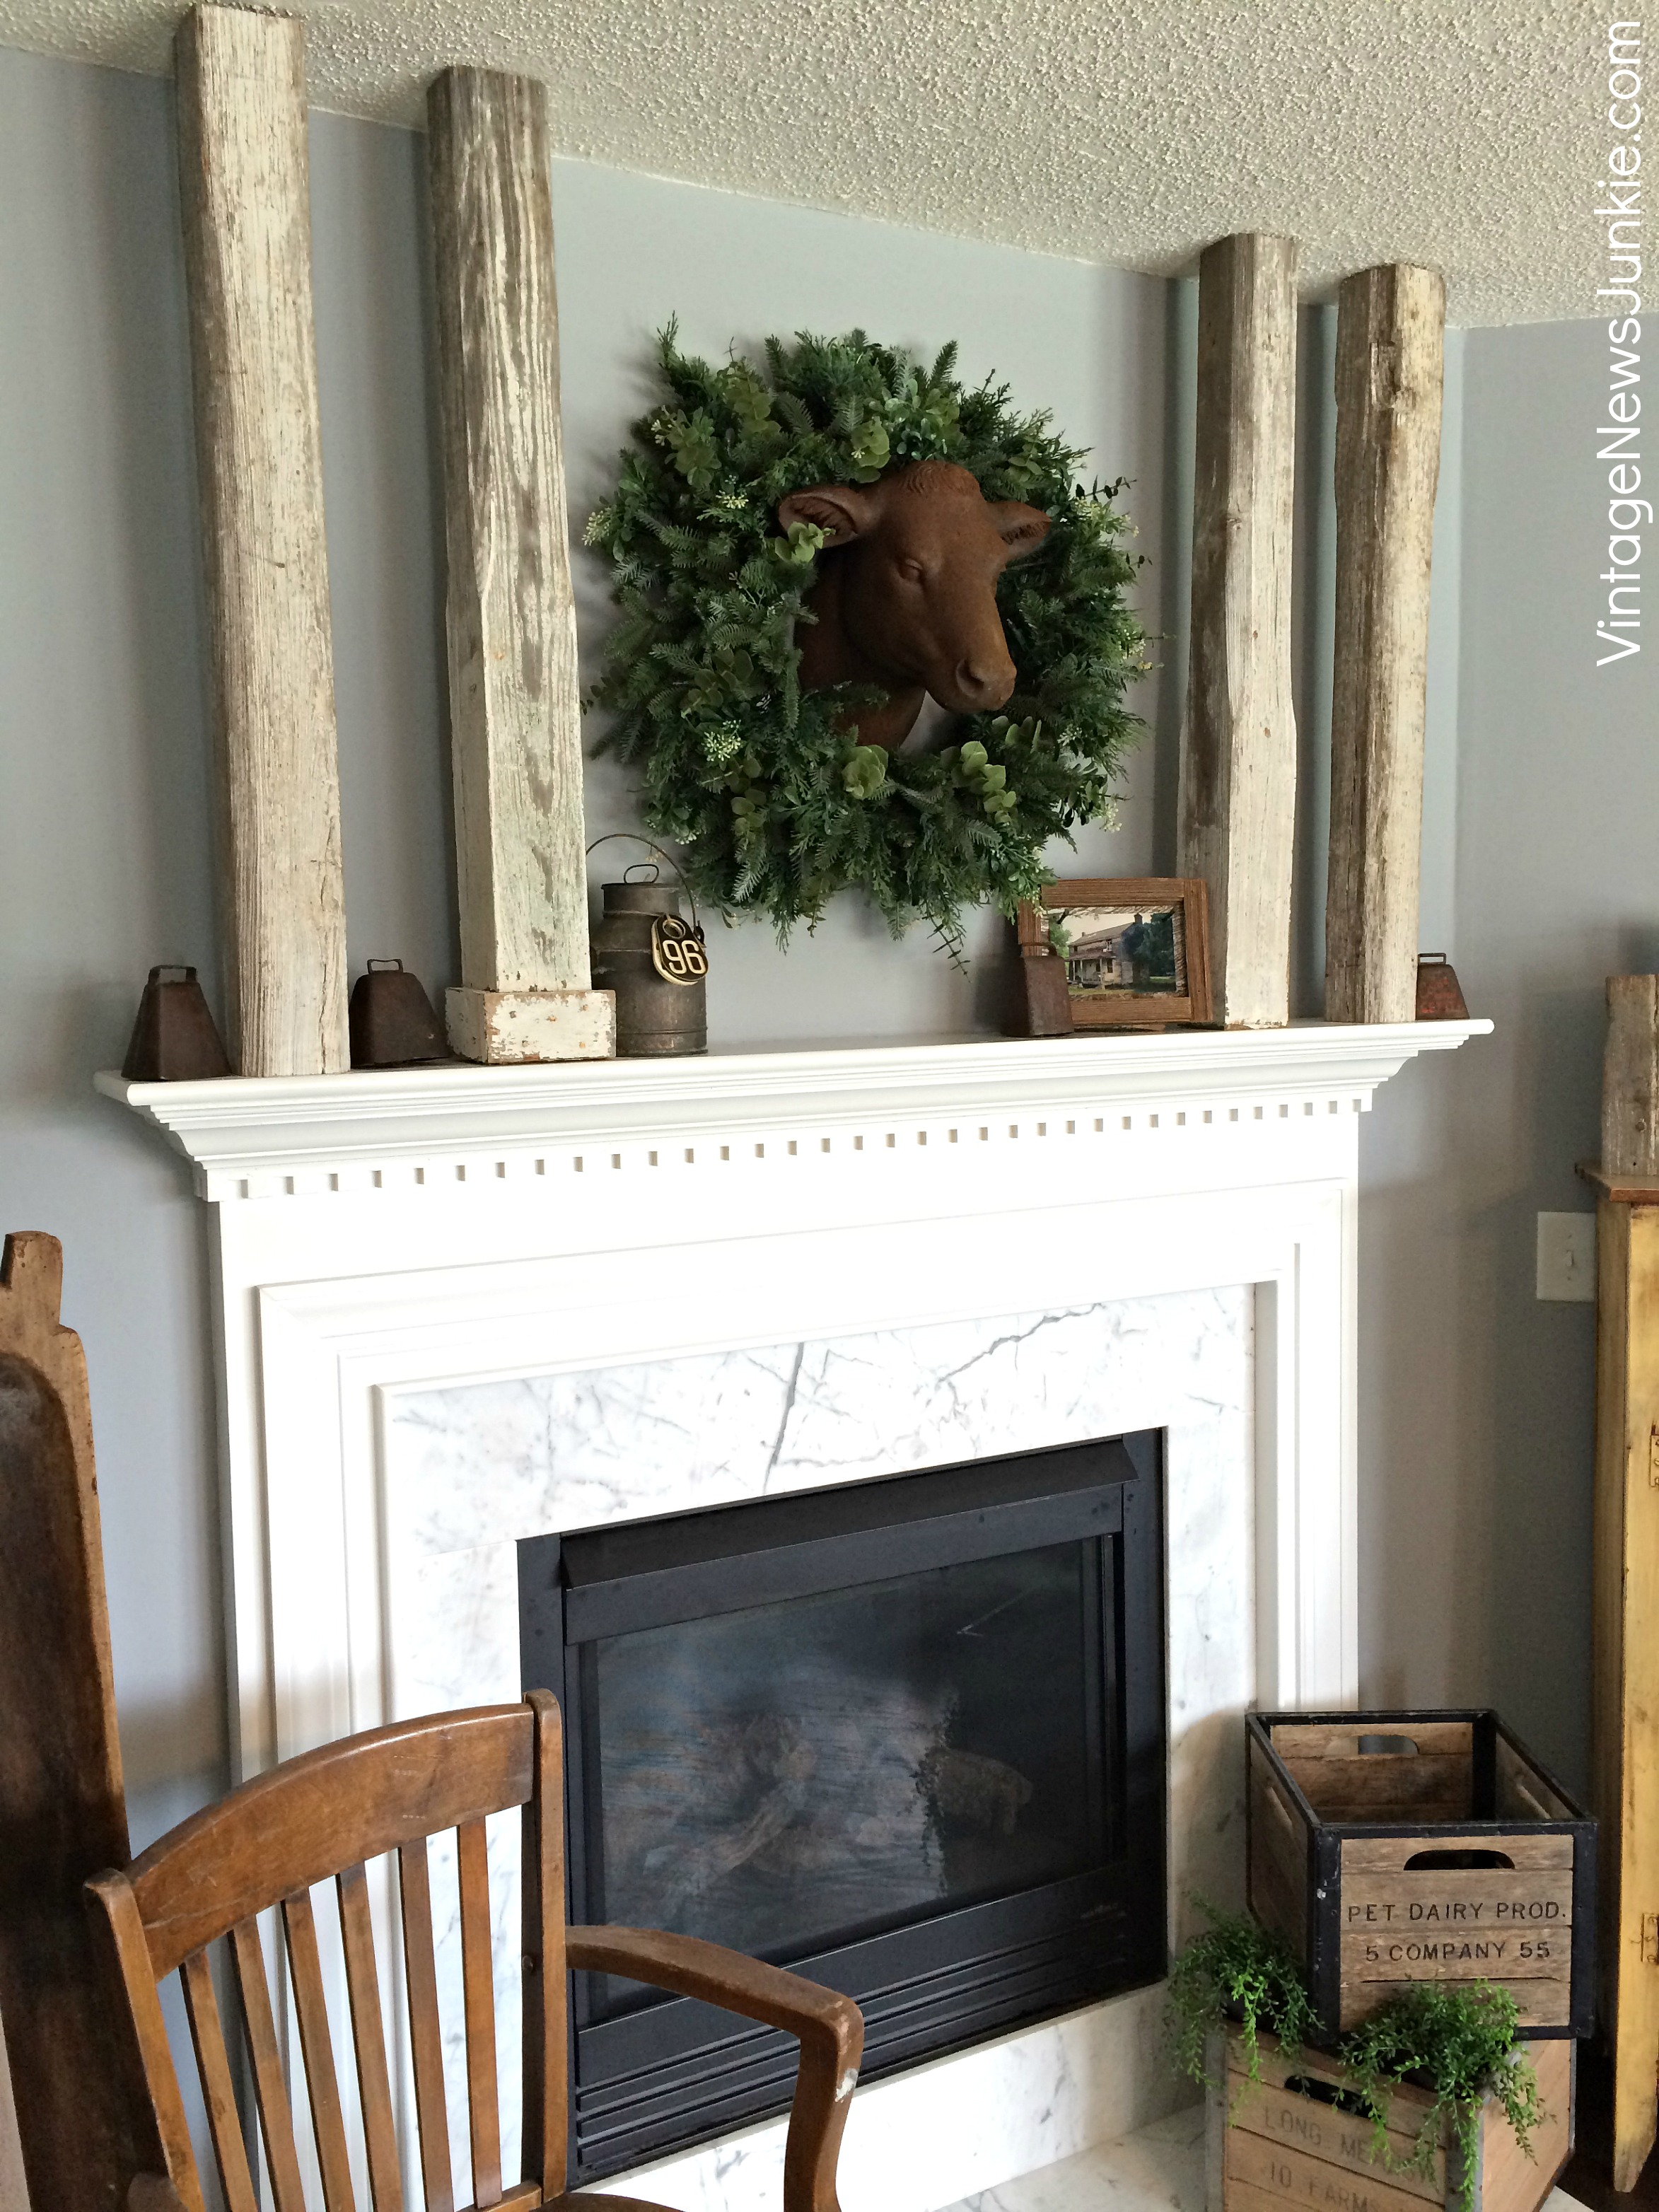 Farmhouse Decor For Living Rooms: 15 Fall Mantel Decorating Ideas